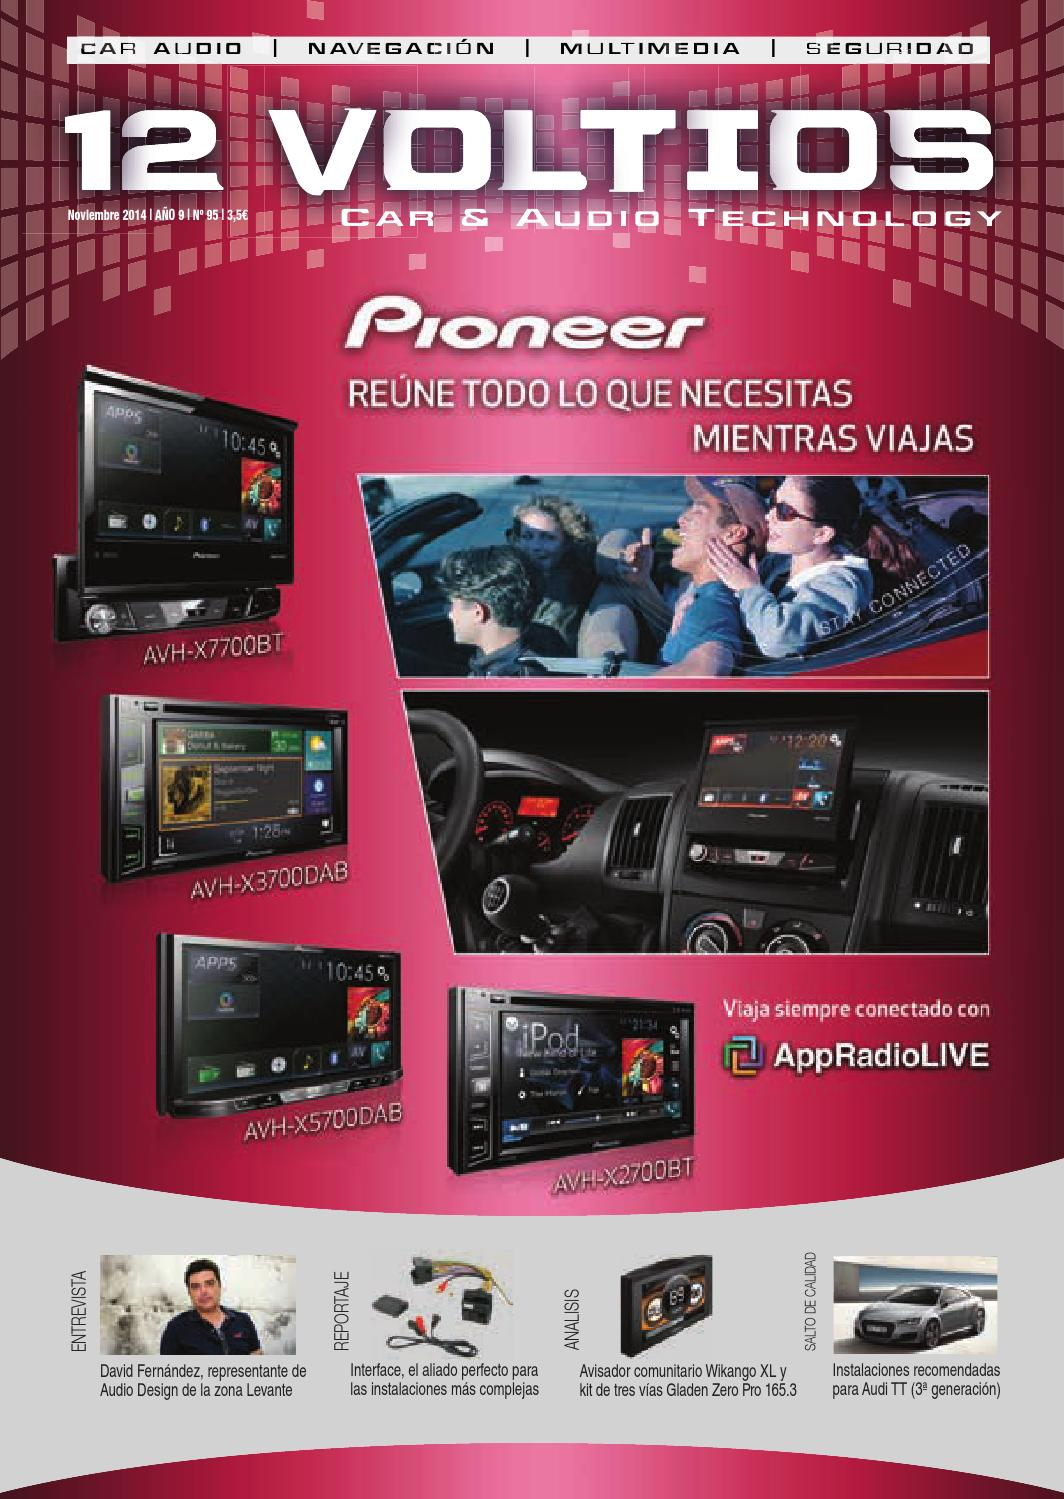 kicker l7 12 wiring diagram images on behance likewise shut up and take my money on car audio sign ideas